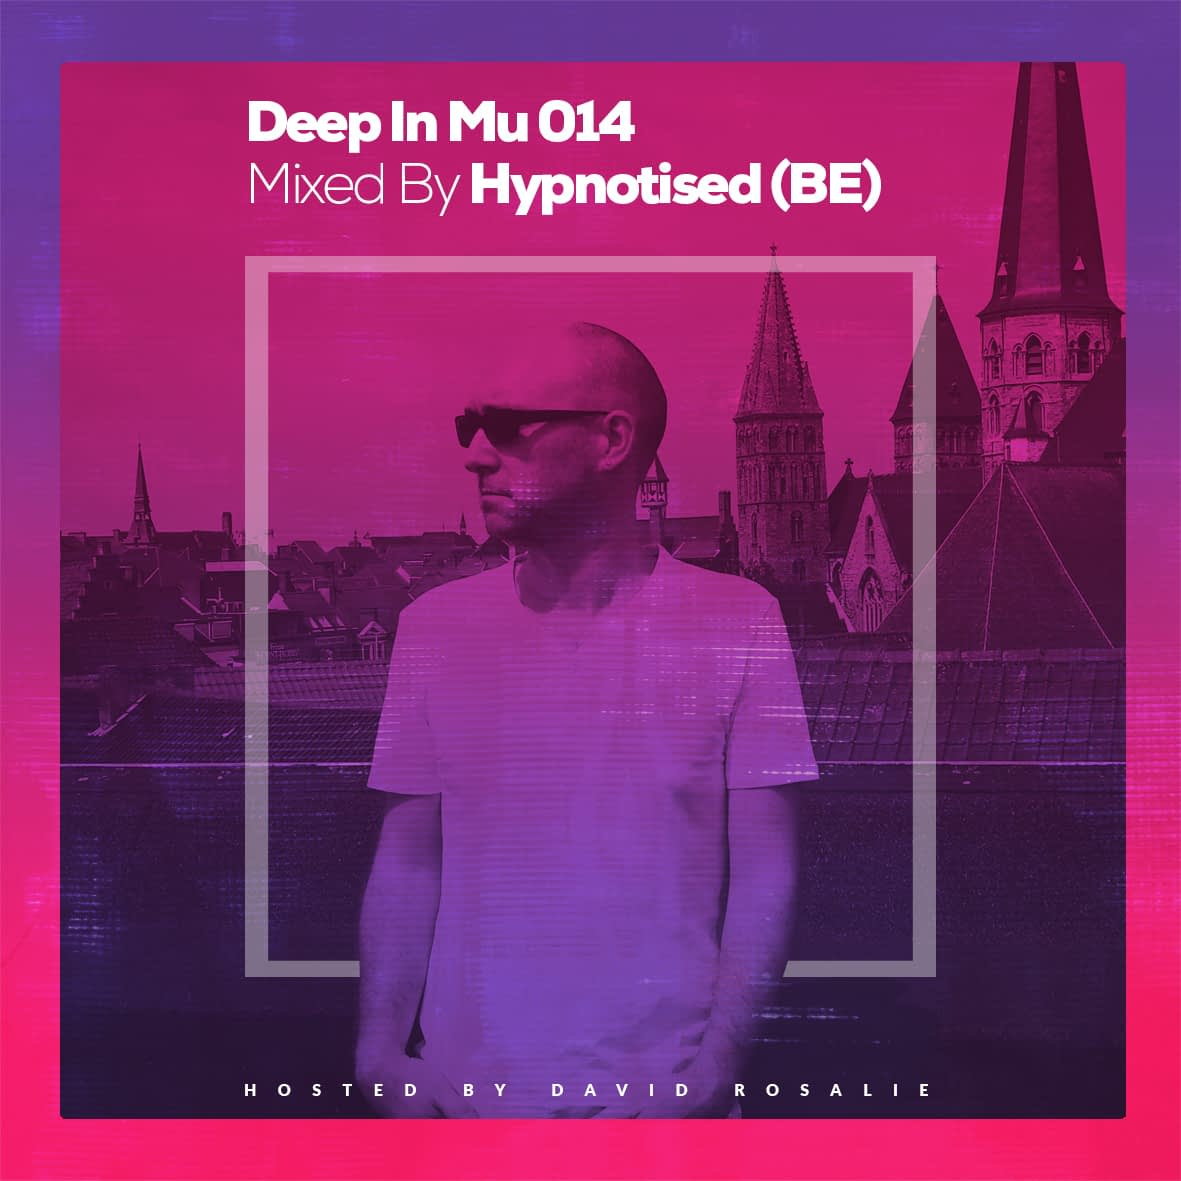 Deep In Mu 014 Mixed By Hypnotised (BE)